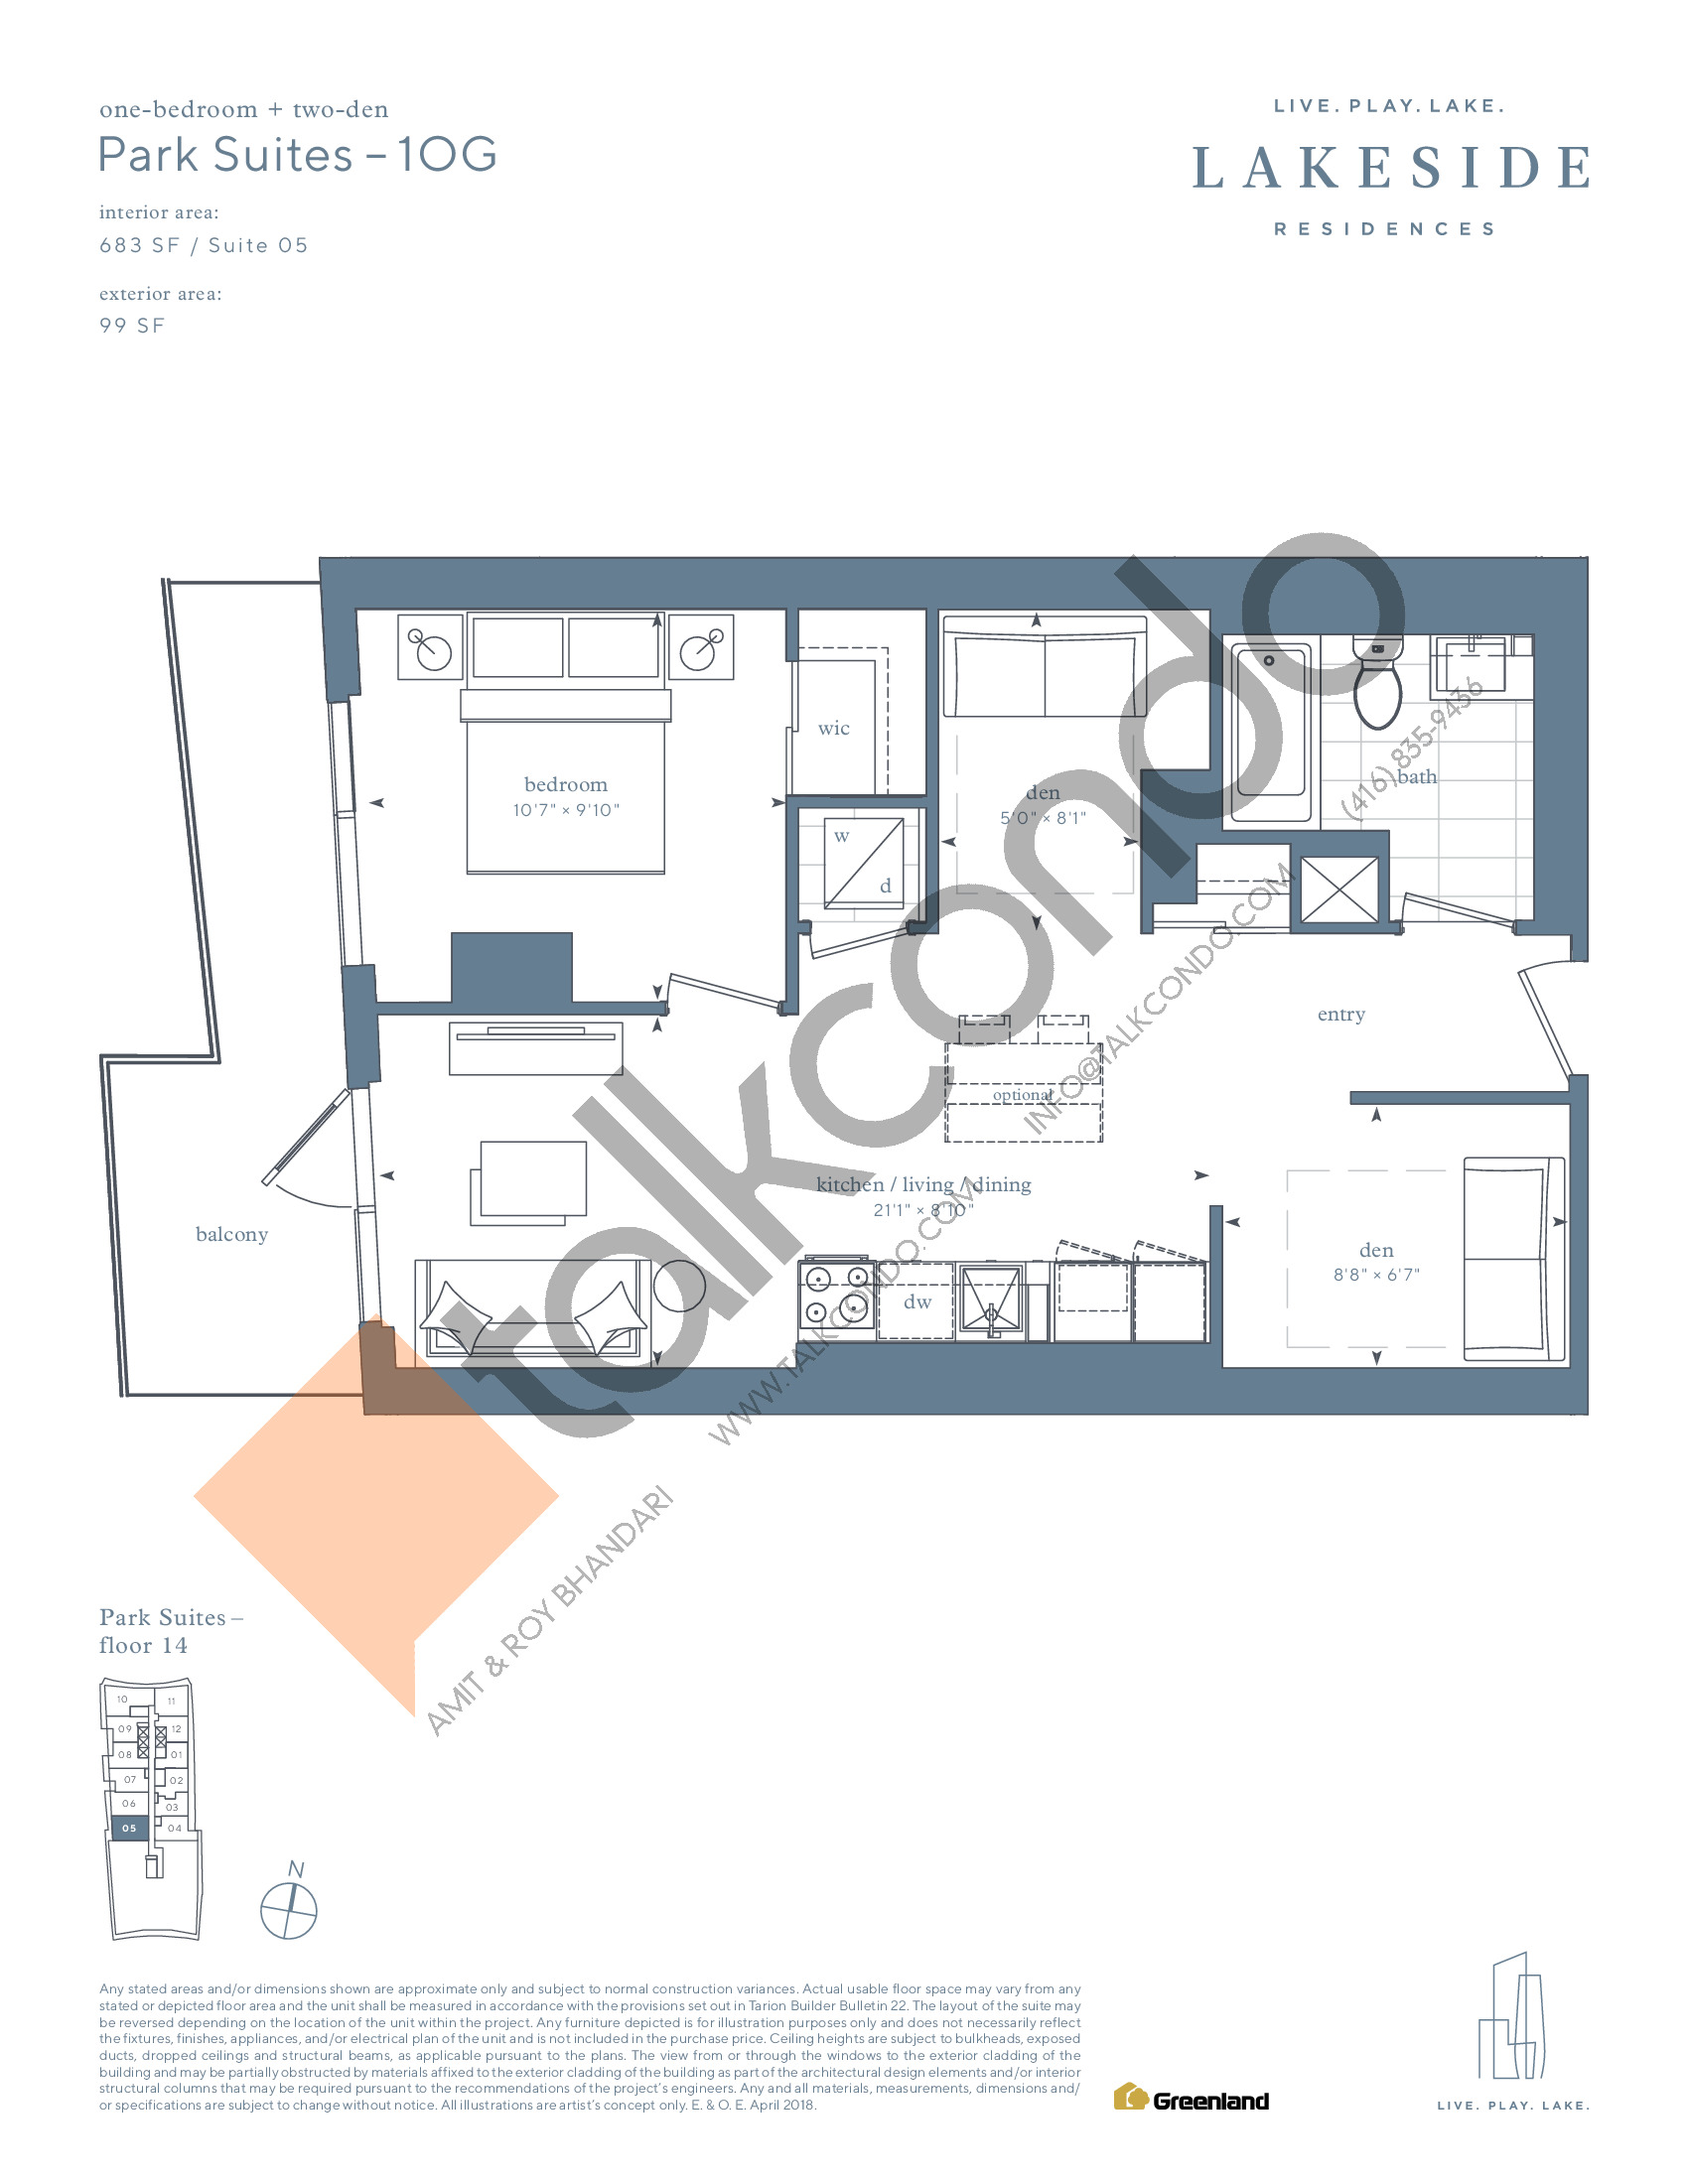 Park Suites - 10G Floor Plan at Lakeside Residences - 683 sq.ft